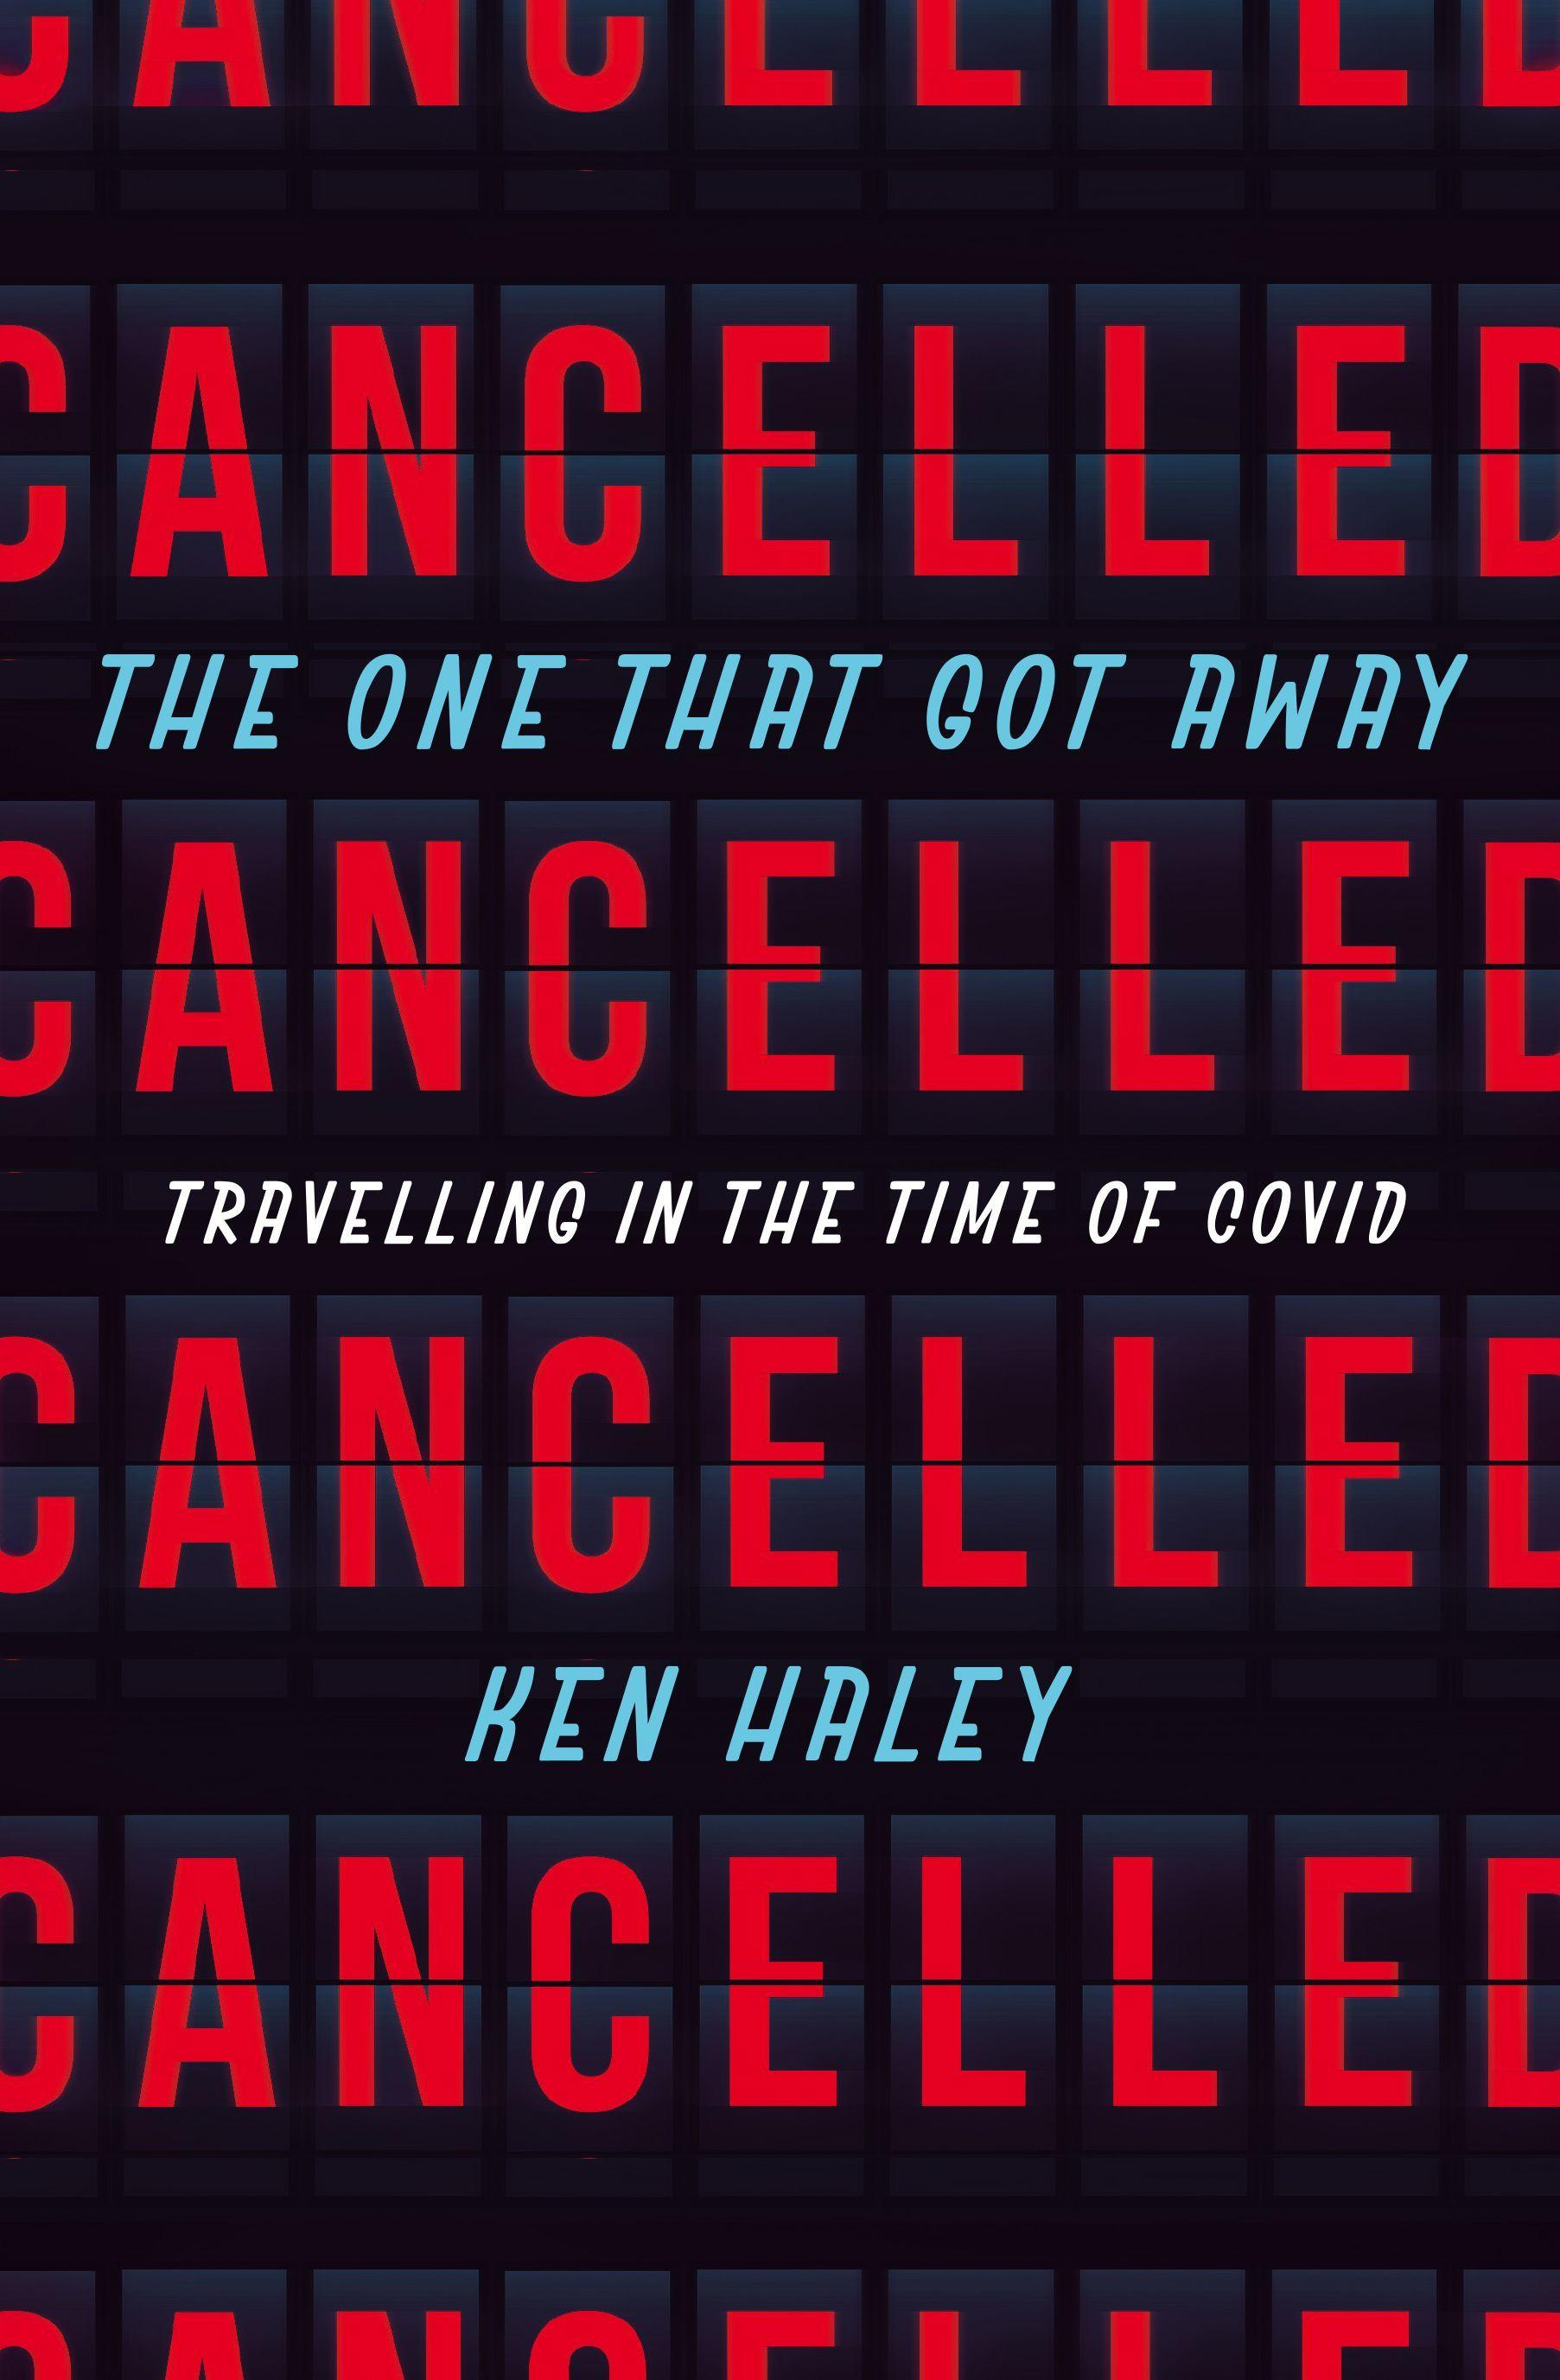 The One That Got Away: Travelling in the Time of Covid